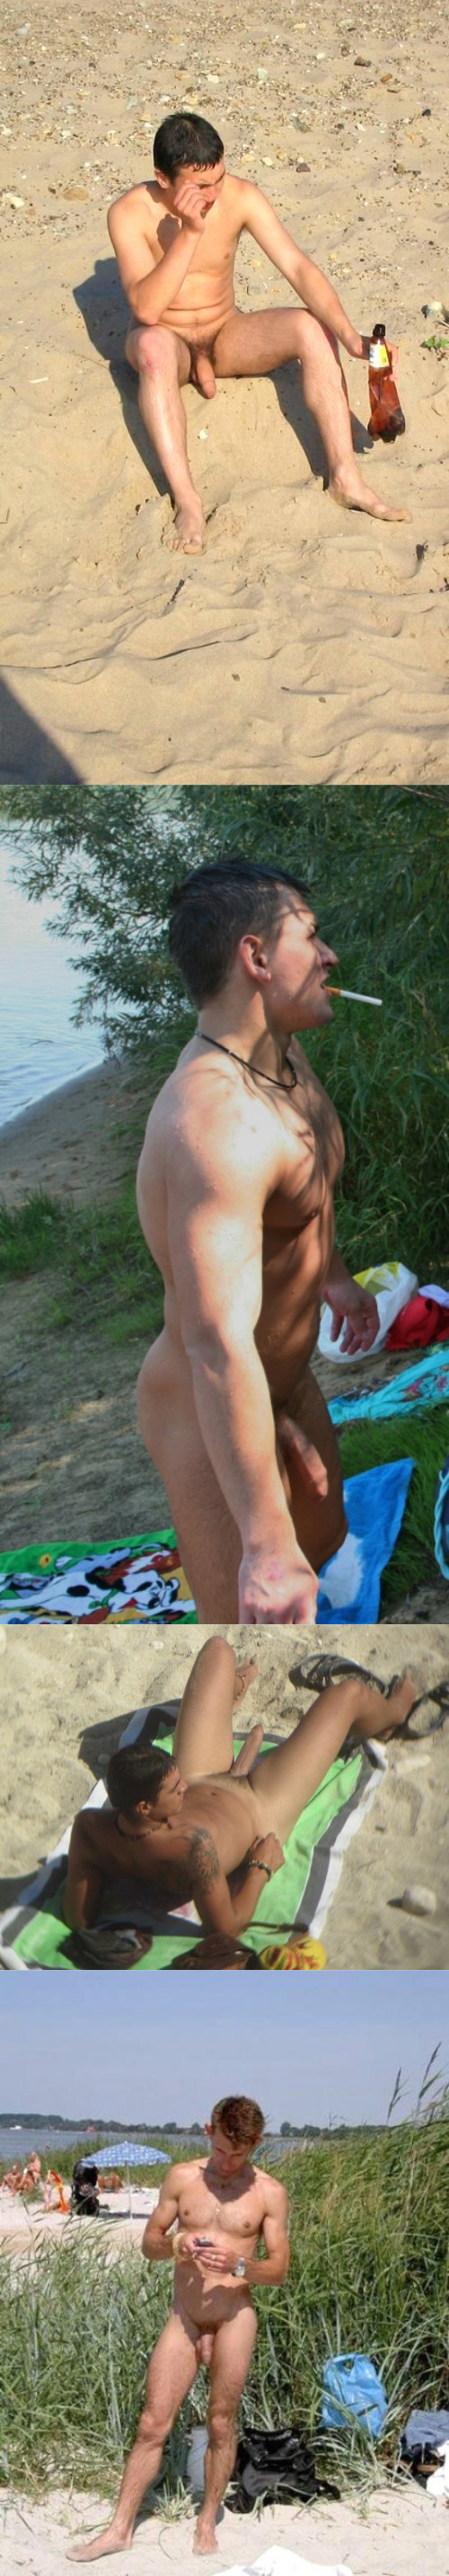 nudist men caught beach